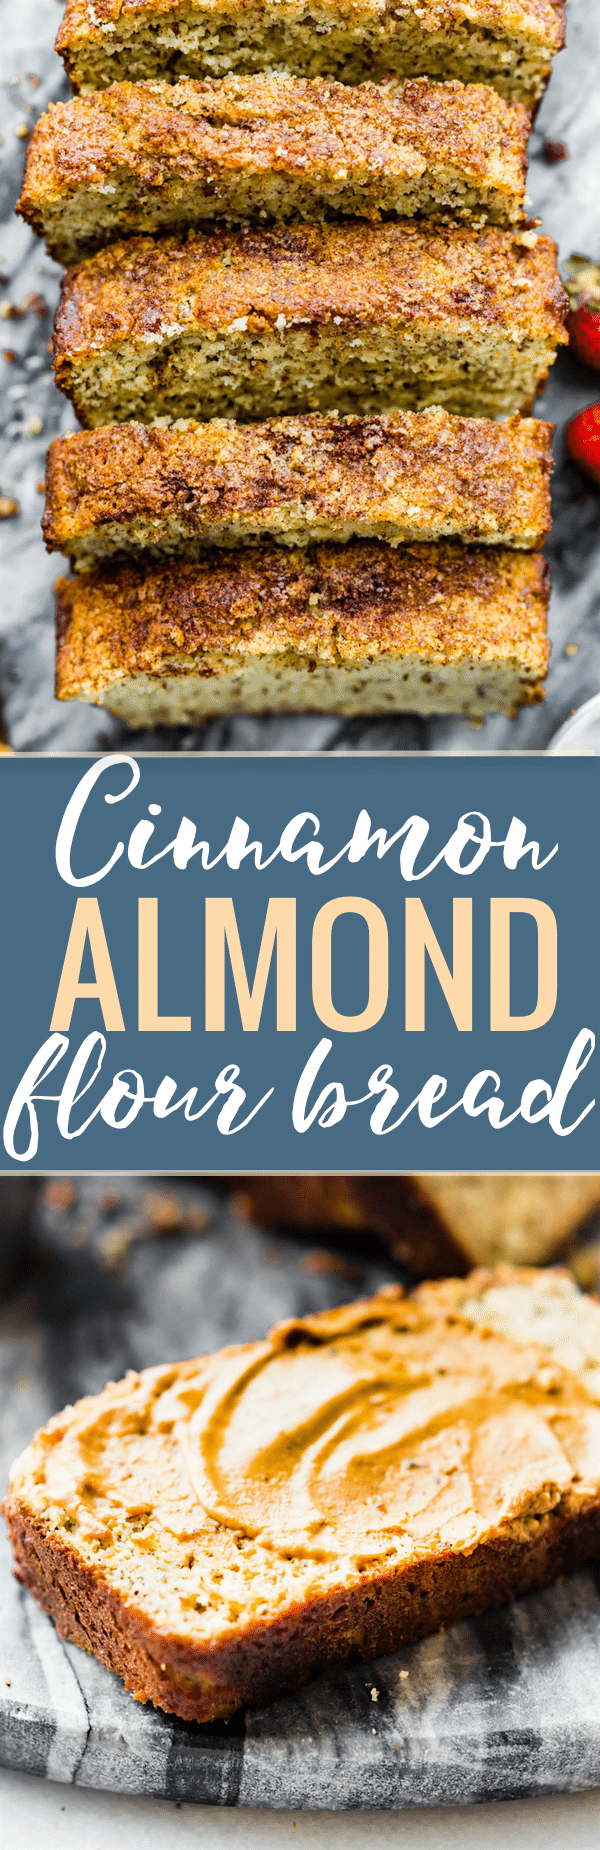 This simple and delicious cinnamon almond flour bread is aversatile paleo bread recipe you're whole family will love! Made with few ingredients; almond flour, flax seed, cinnamon, and eggs to name a few. A nourishing wholesome bread for breakfast or snacking. www.cottercrunch.com